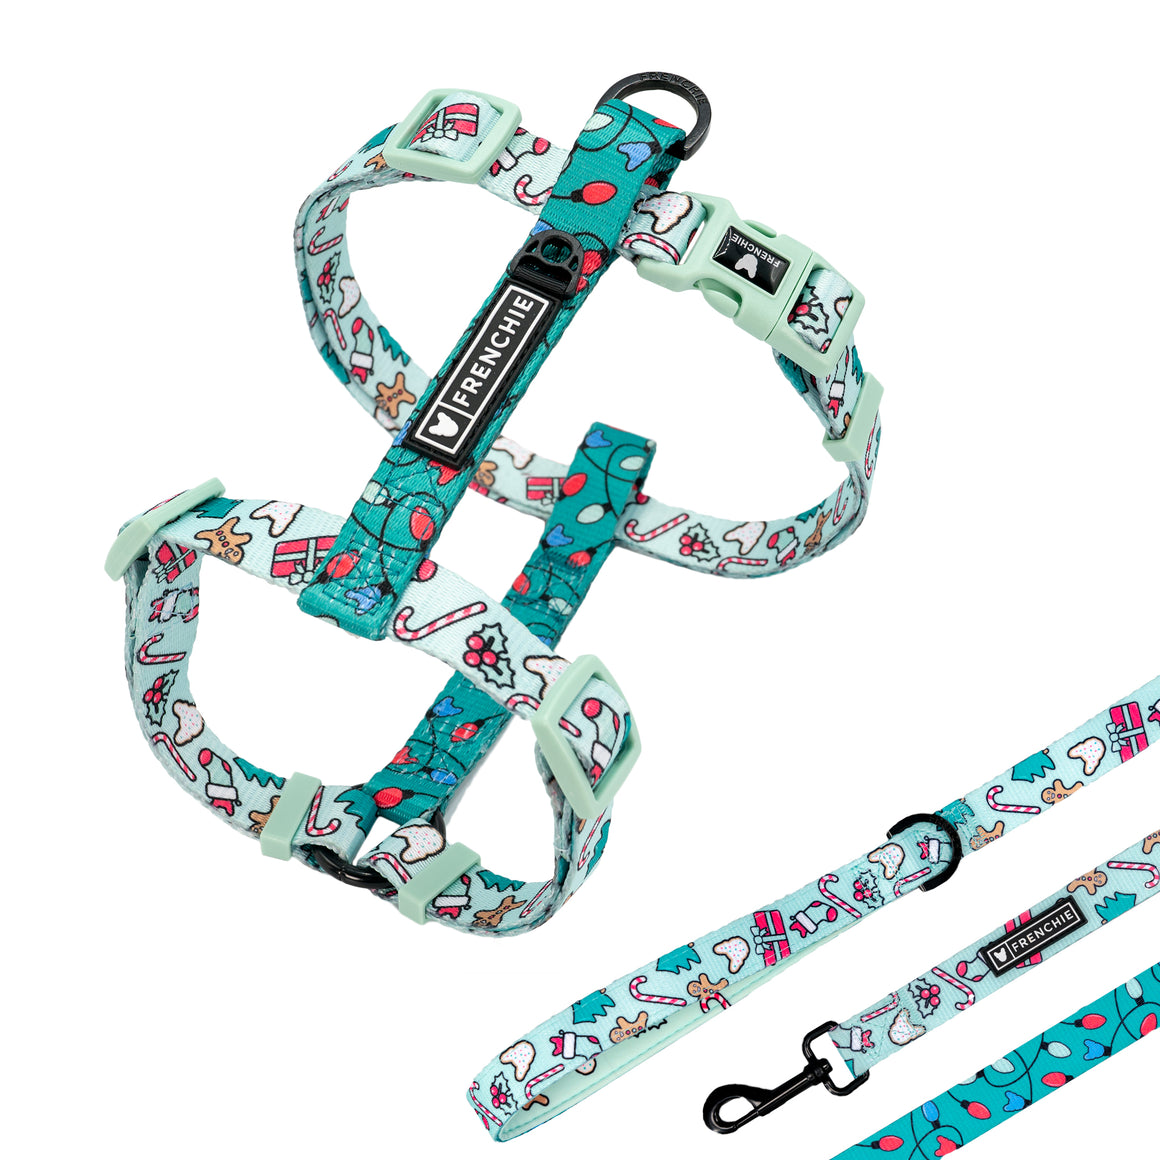 Matching Set- Frenchie Strap Harness and Comfort Leash- Deck the Halls